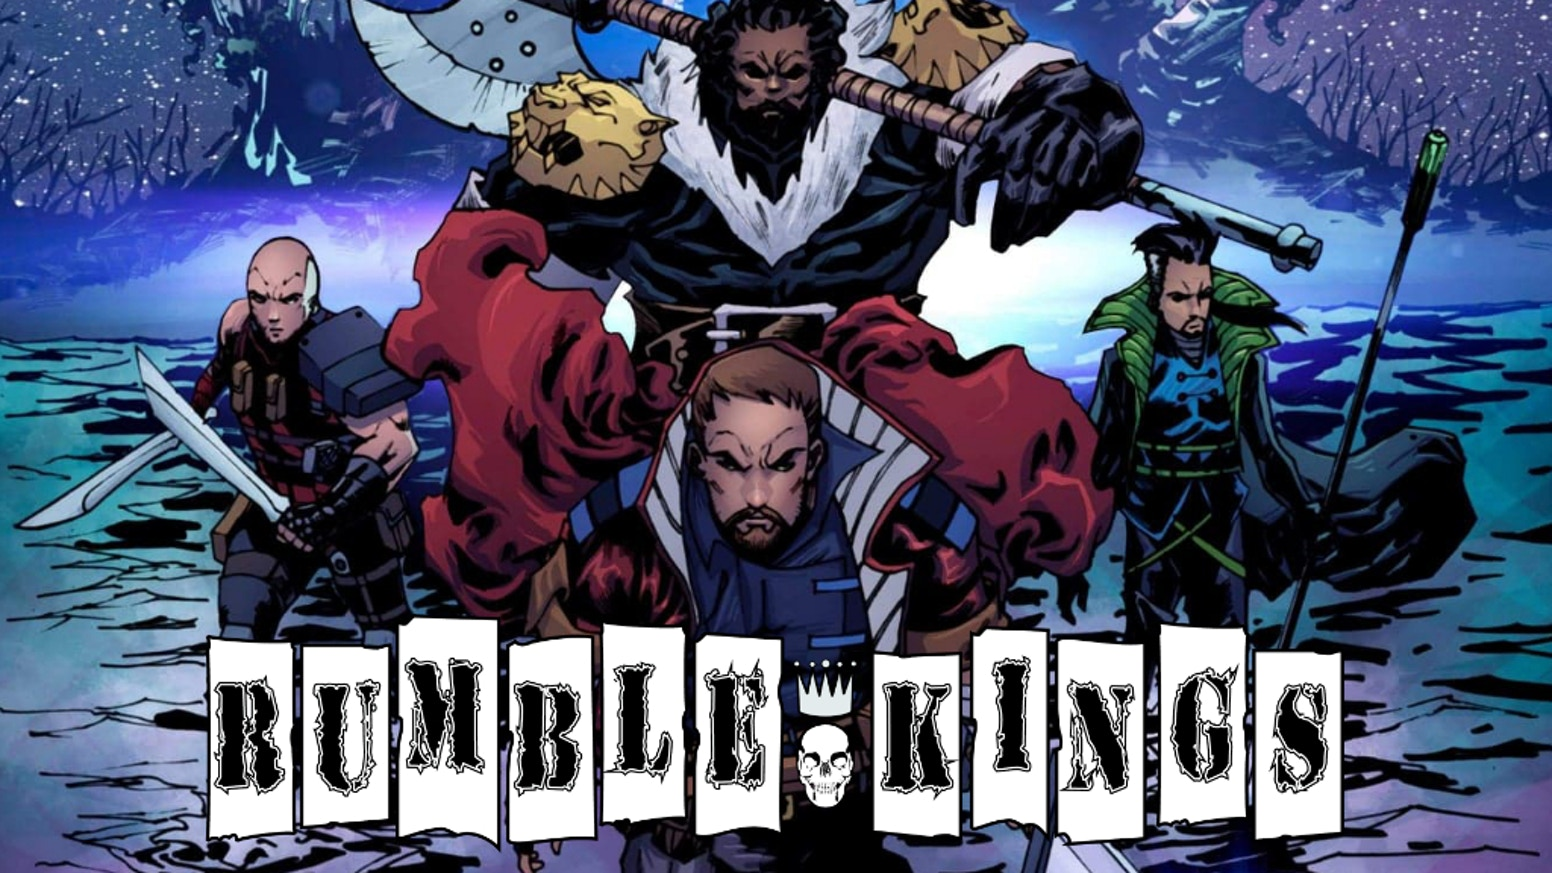 Issue #2 of the Rumble Kings comic series.